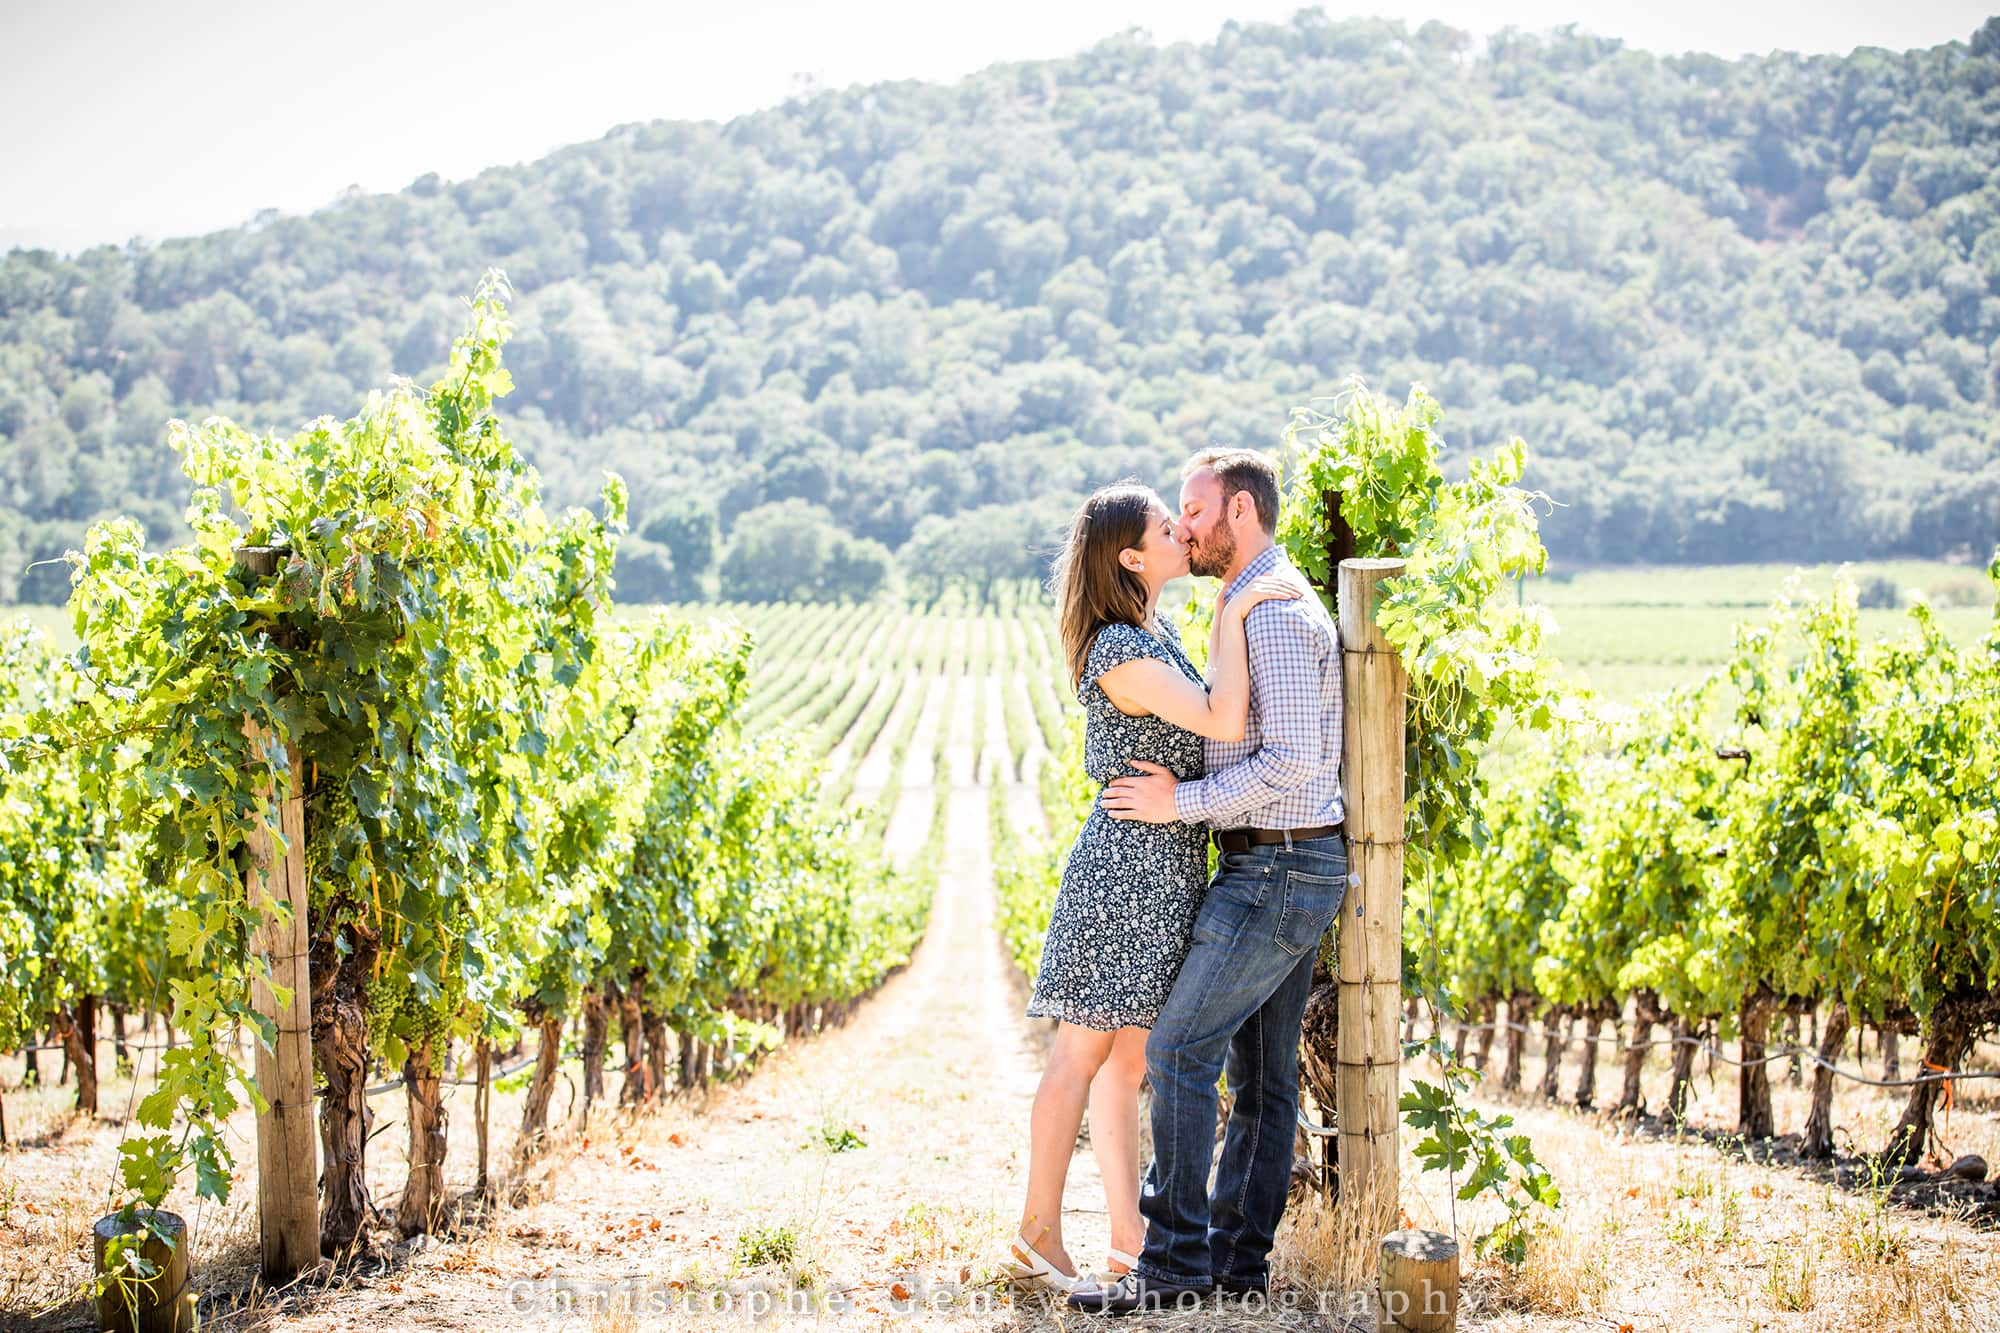 Best Proposal ideas  in the Napa Valley